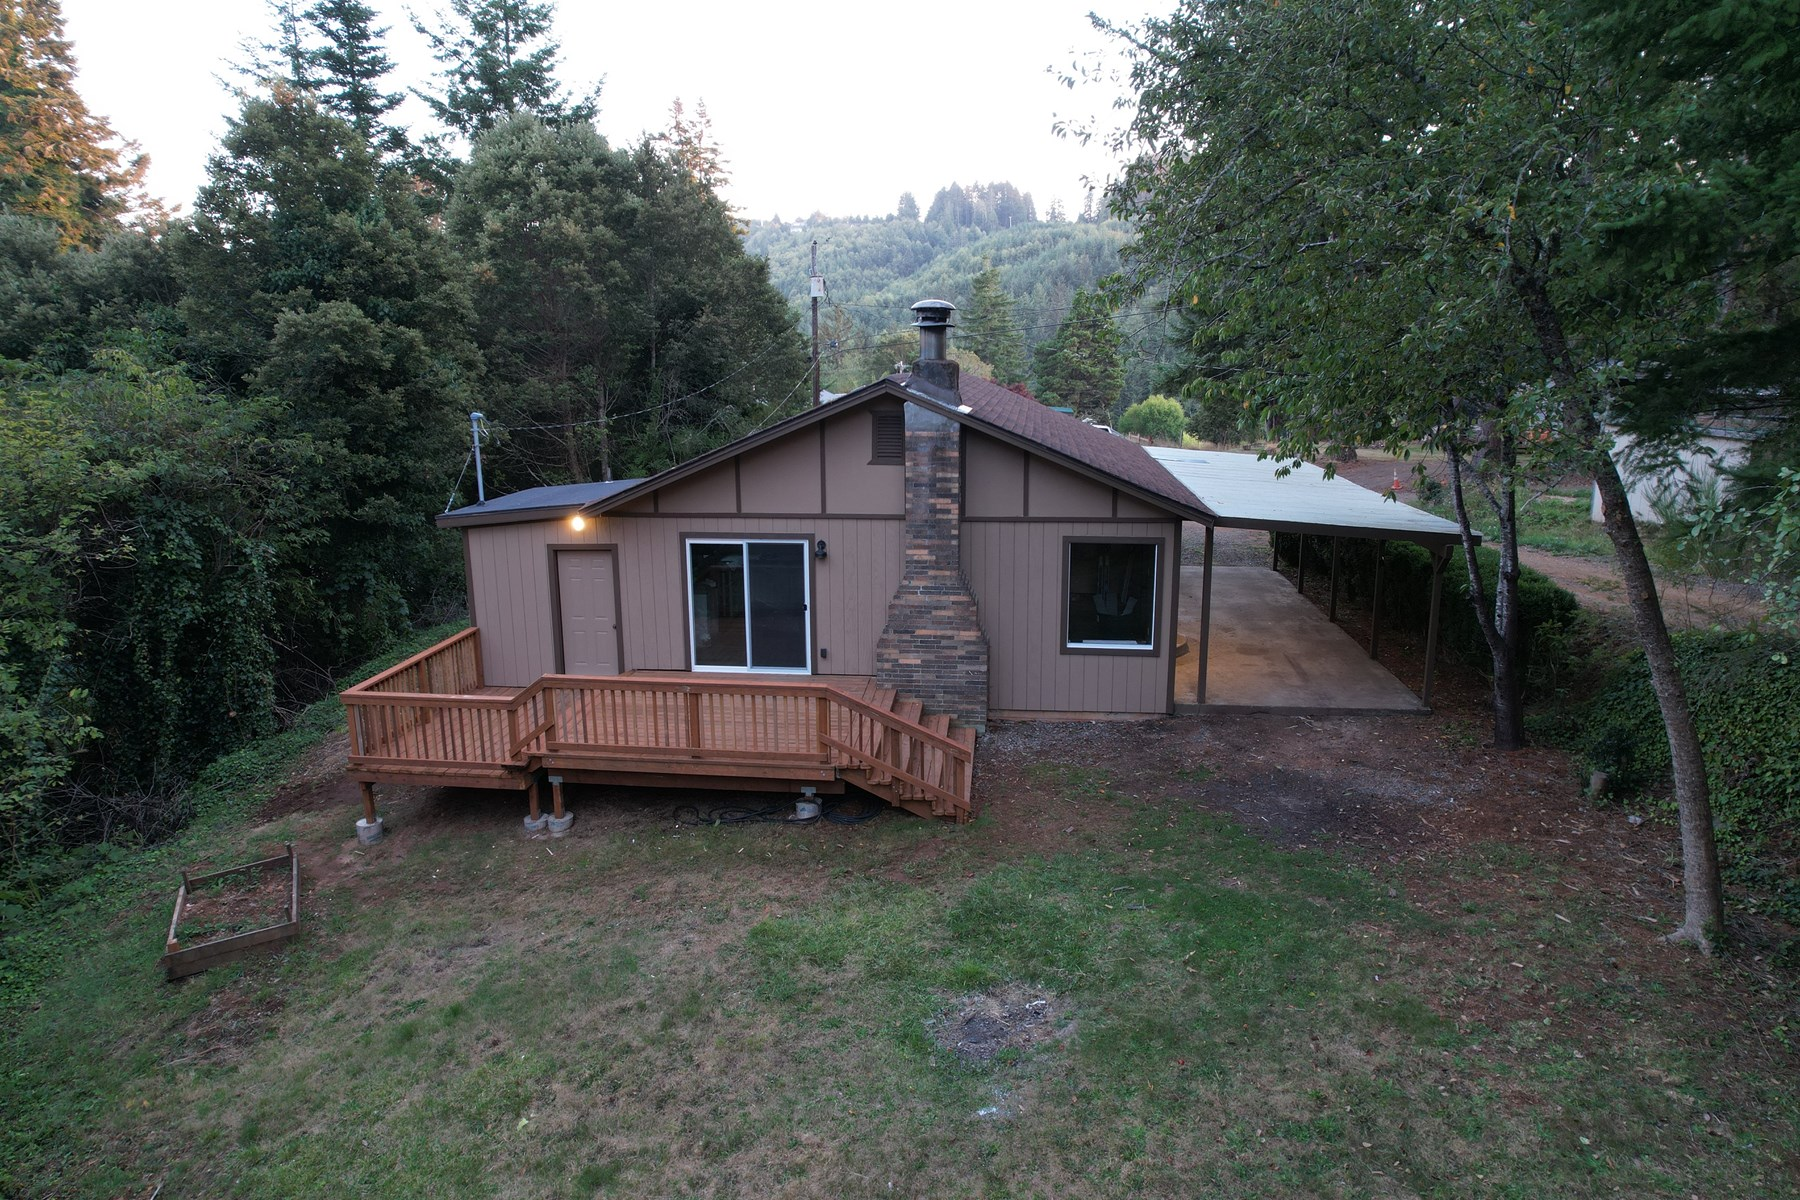 Home for sale on the Southern Oregon Coast